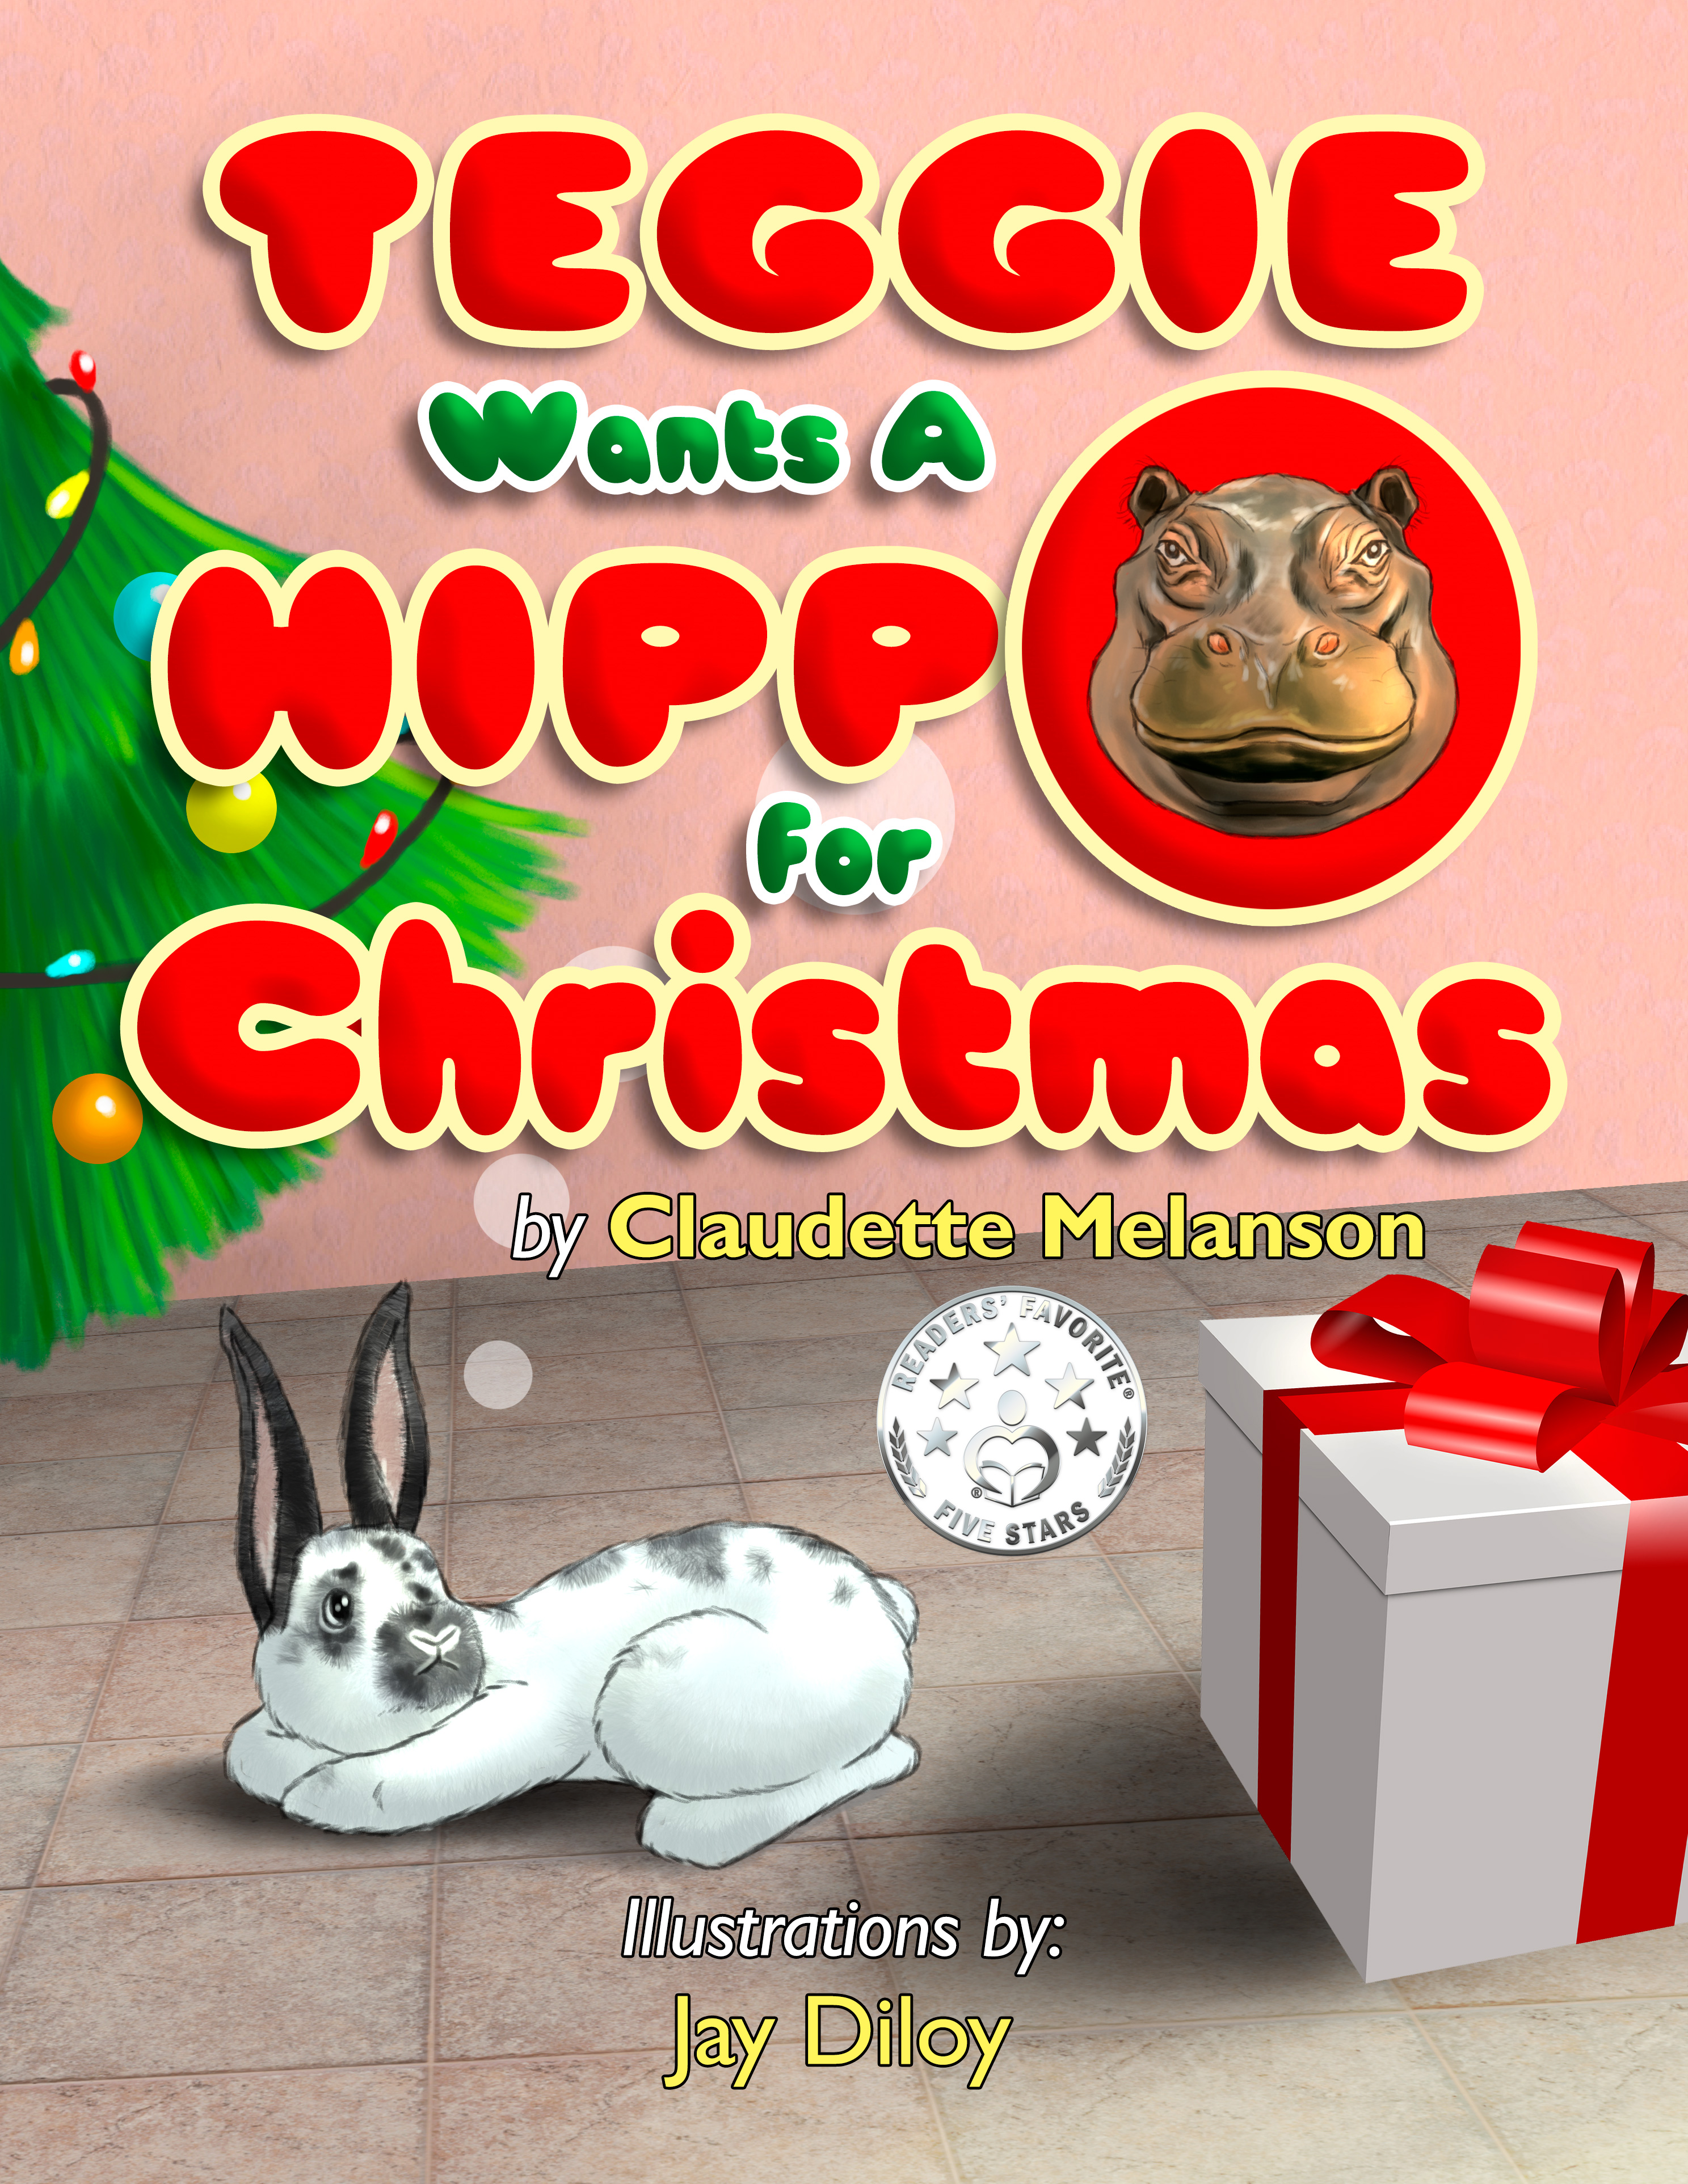 Hippo For Christmas.Teggie Wants A Hippo For Christmas An Ebook By Claudette Melanson